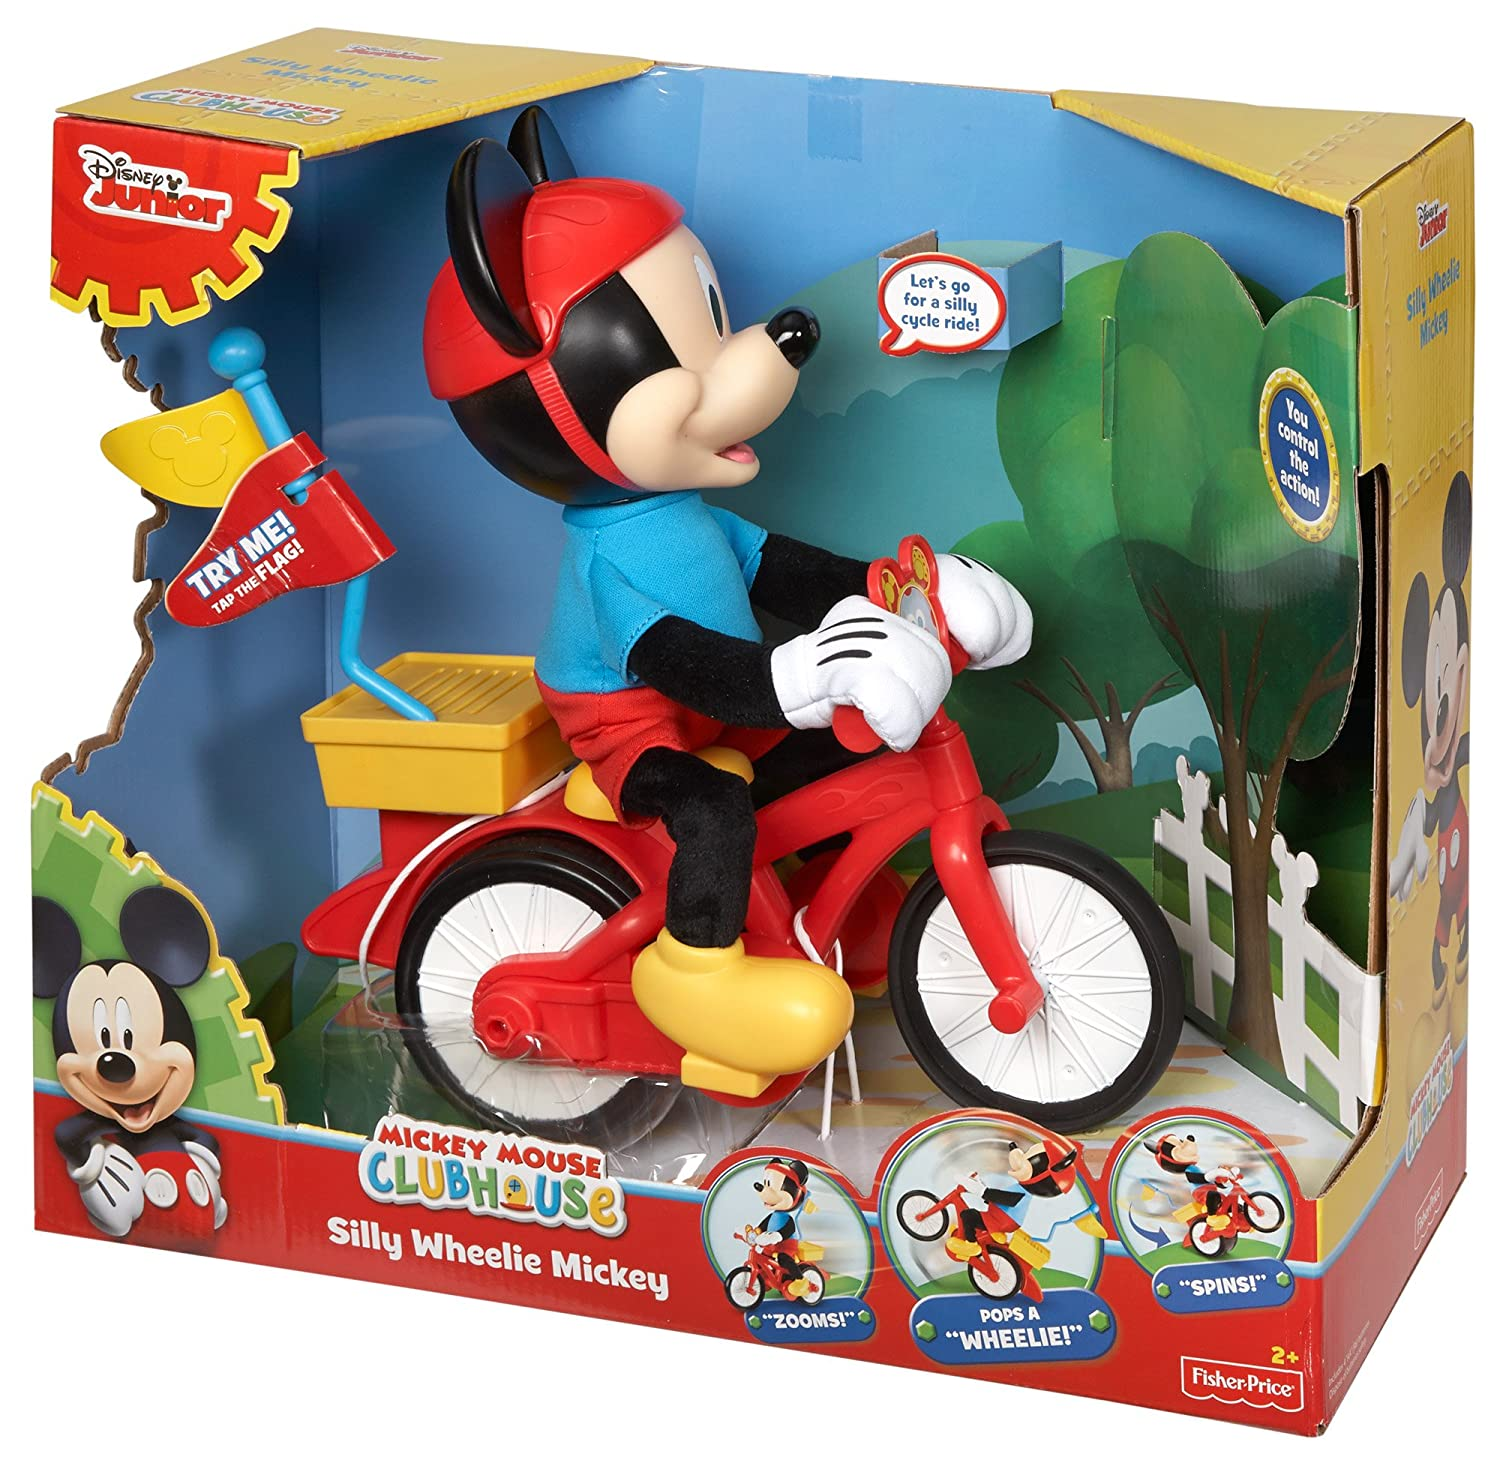 Mickey Mouse Clubhouse Silly Cycling Mickey Amazon Toys